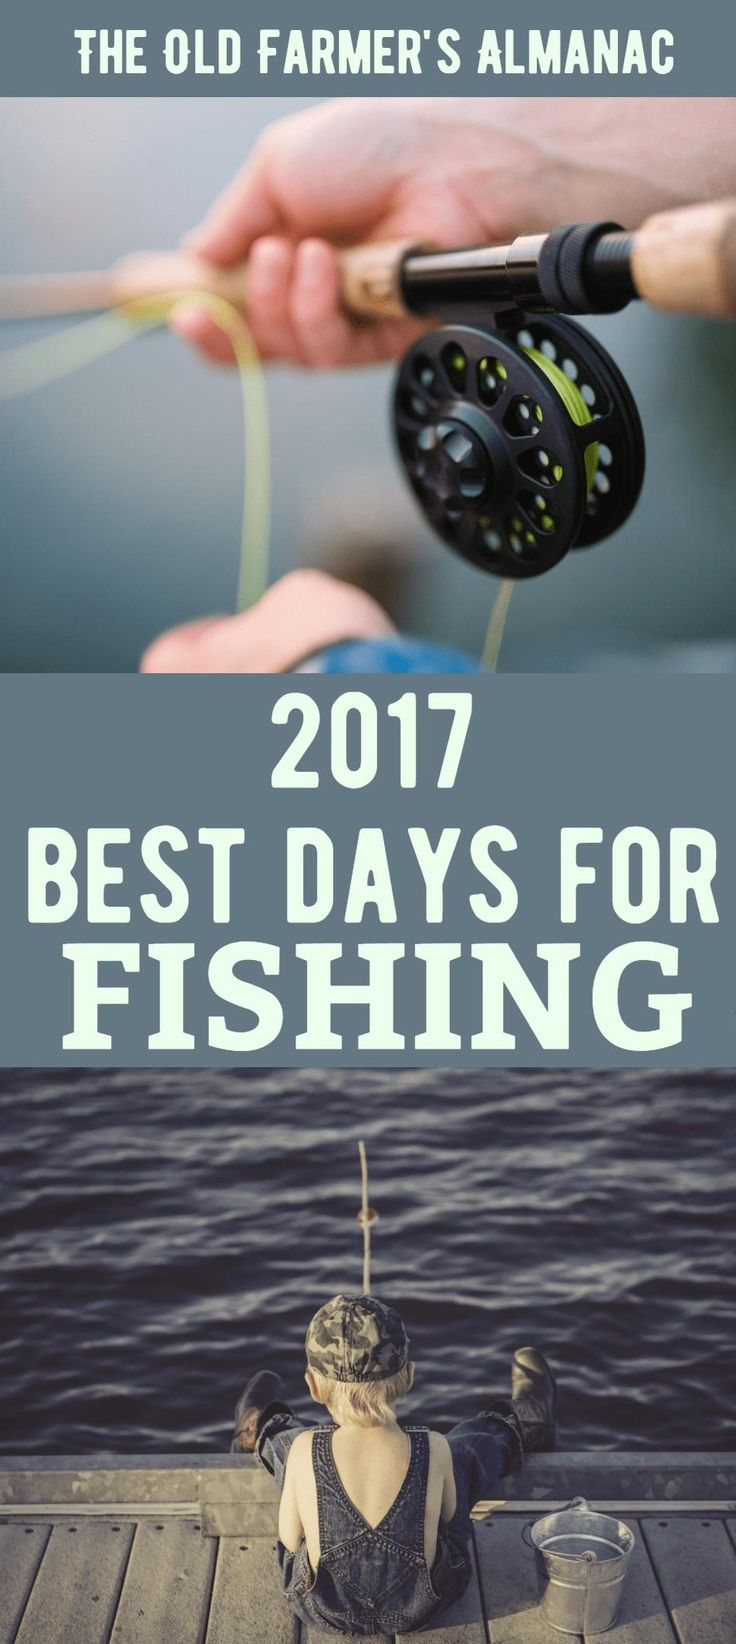 Best Days to Fish in 2017, according to The Old Farmer's Almanac.